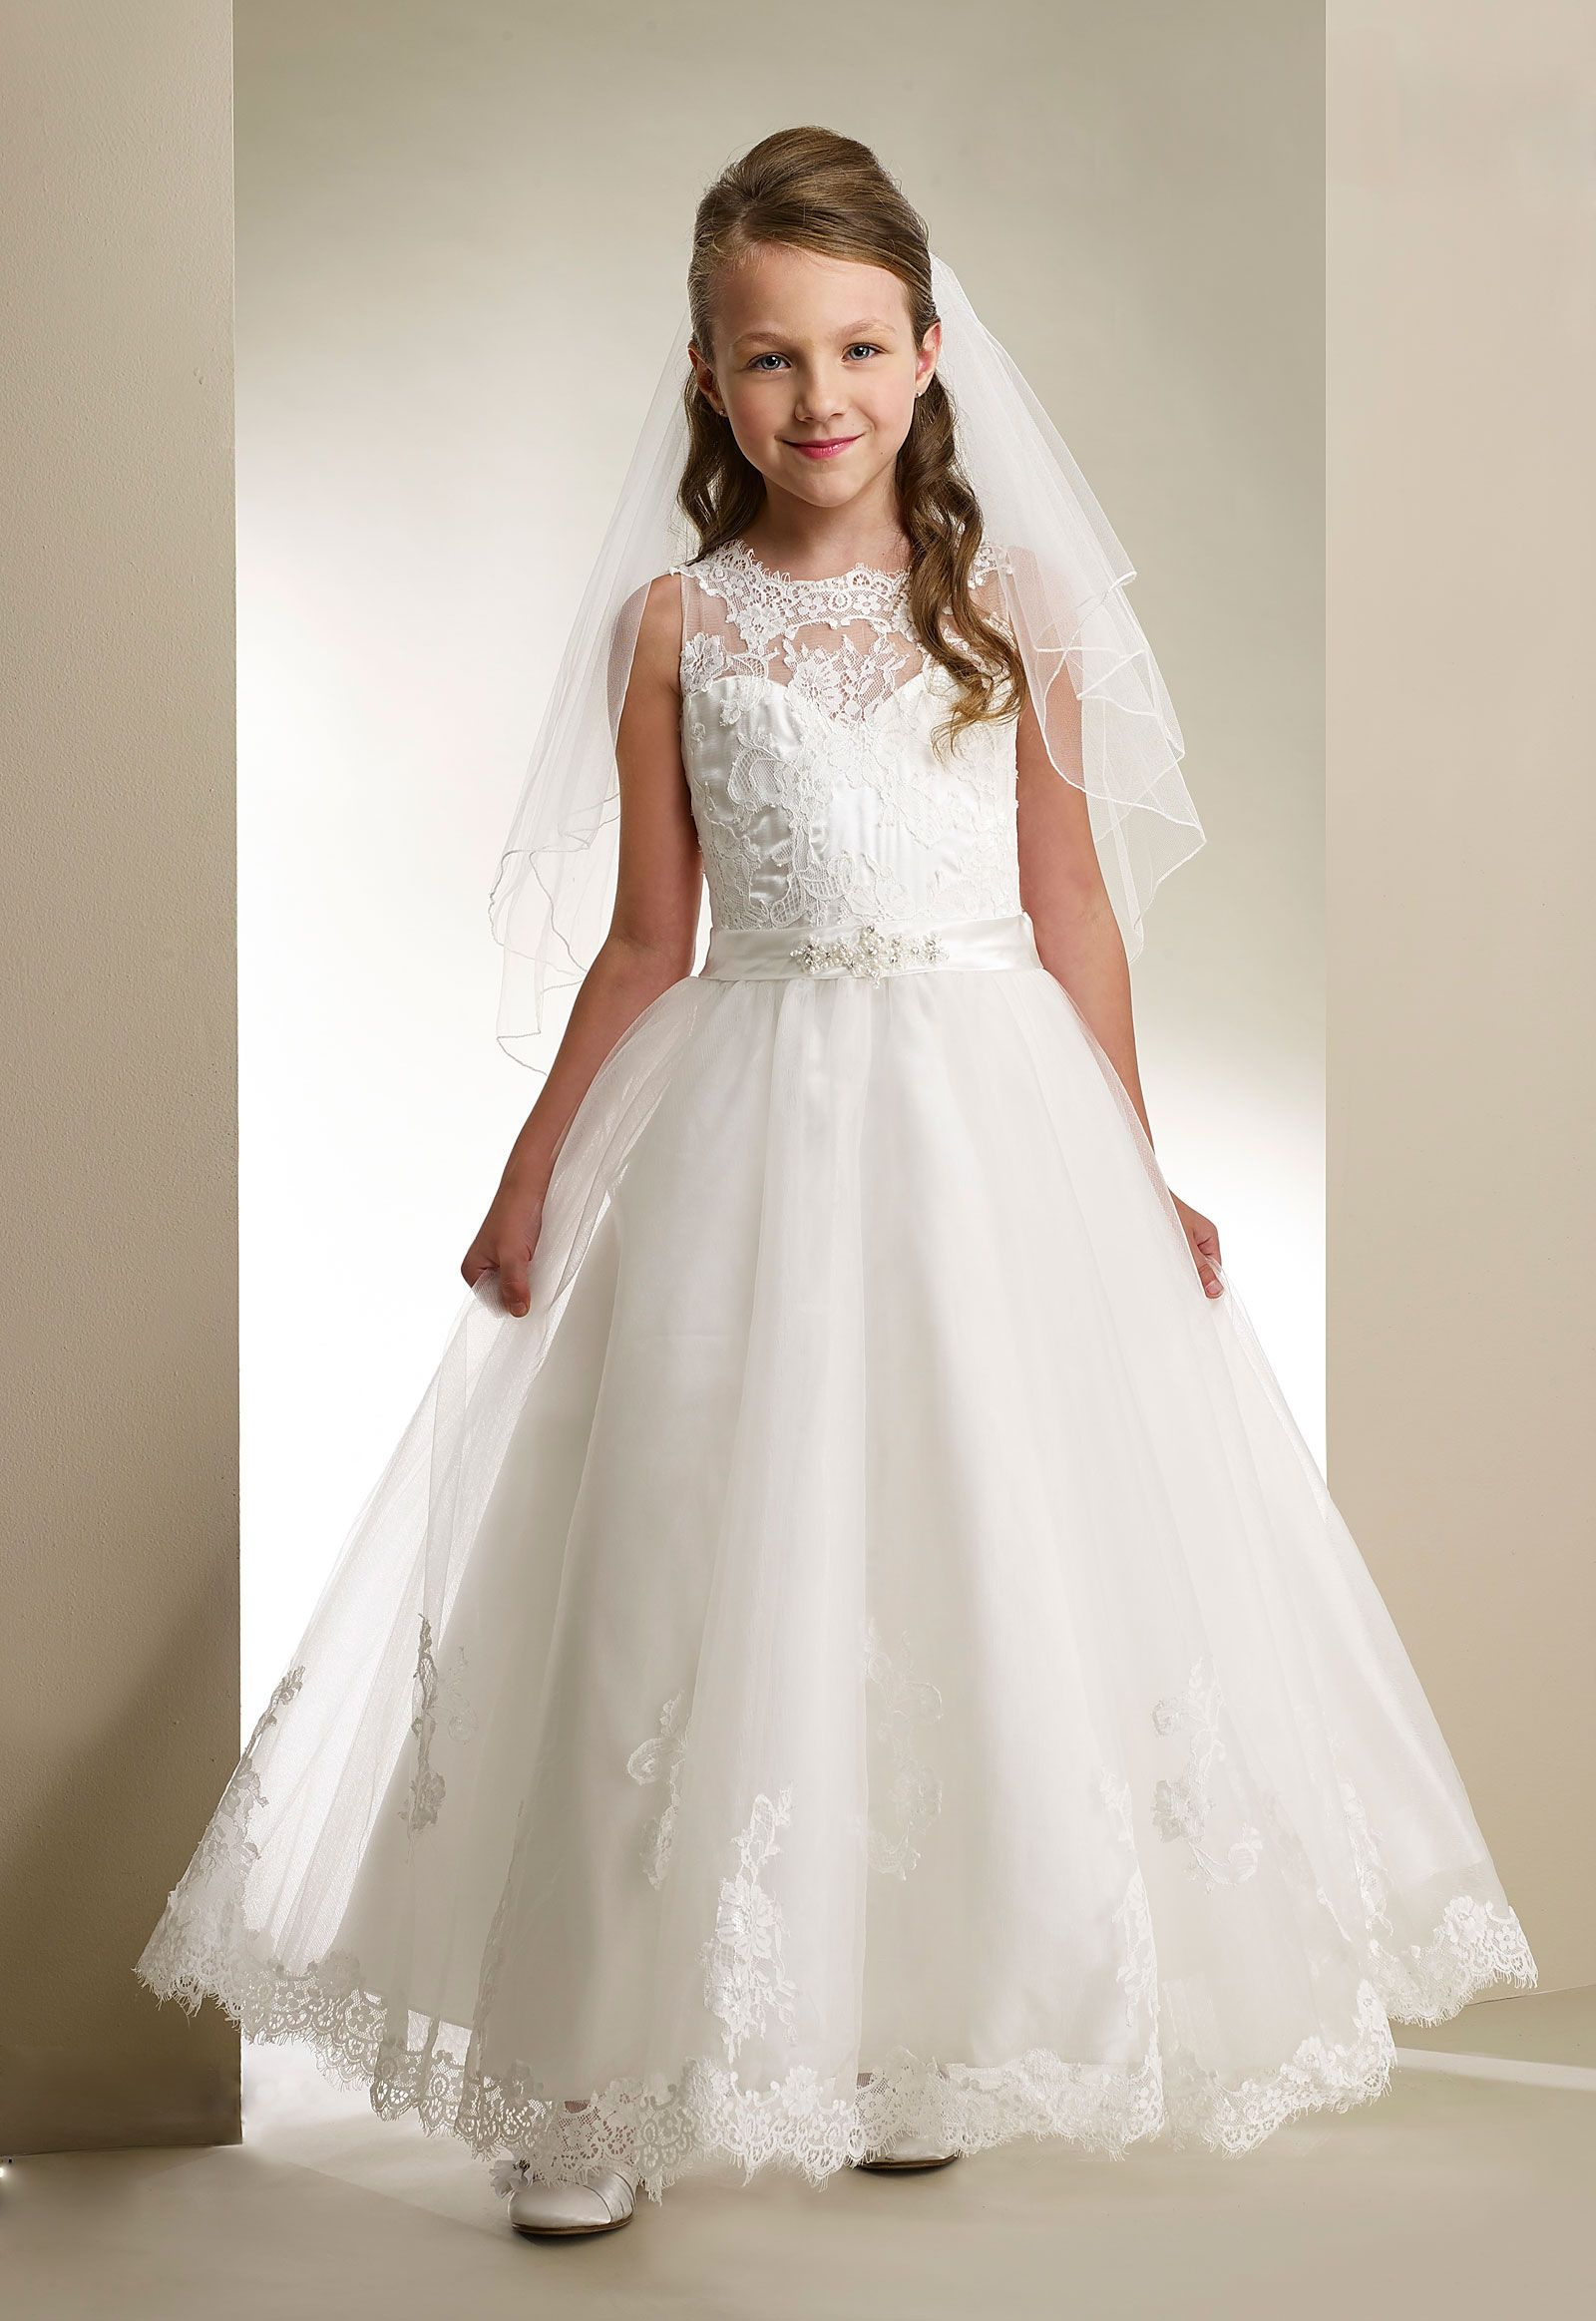 Couturedesigner girls dress style t sleeveless tulle and lace